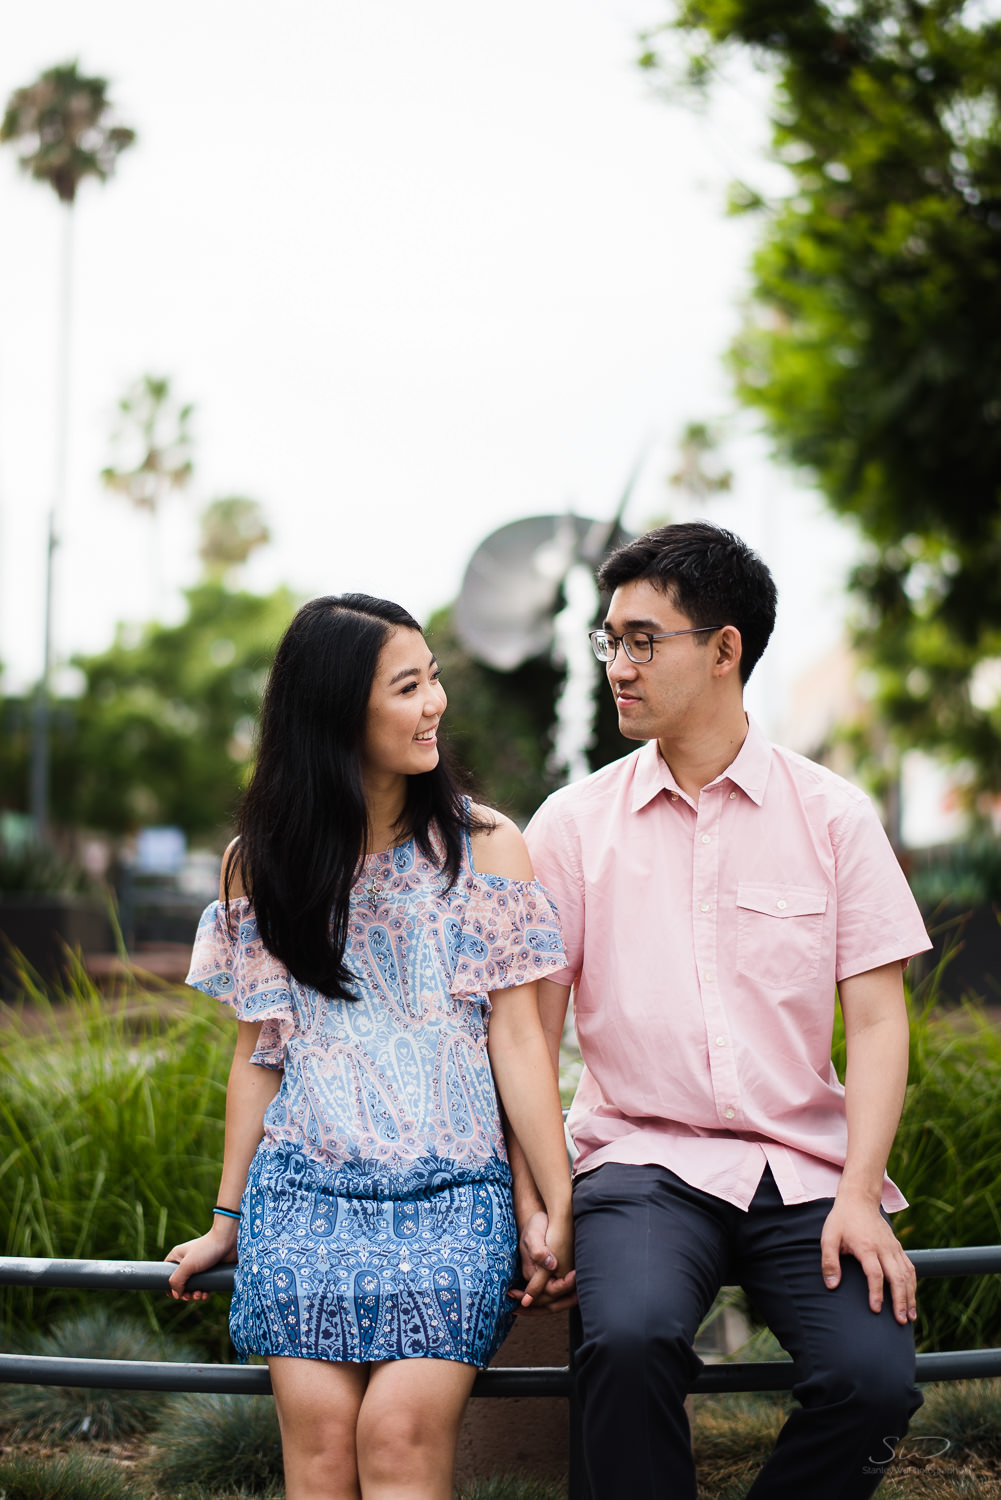 downtown-santa-monica-pier-and-beach-engagement-stanley-wu-photography-los-angeles-portrait-and-wedding-photographer-17.jpg